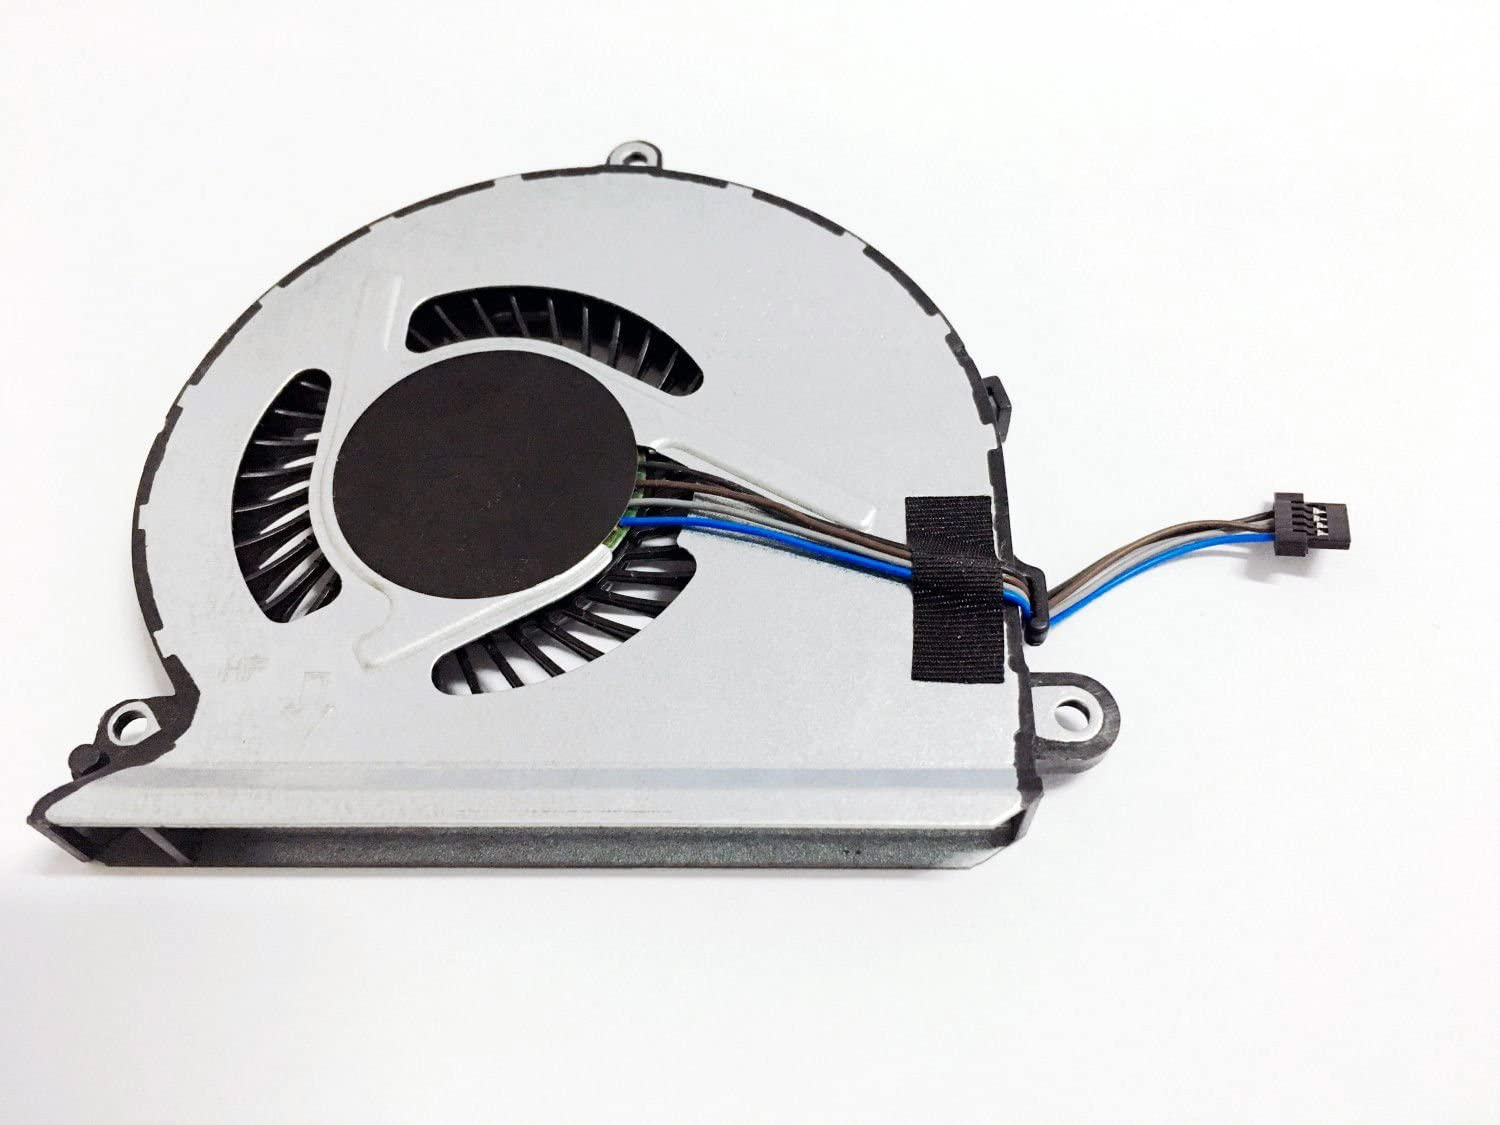 Comp XP New Genuine Fan For HP Pavilion 15-AU Fan 856359-001